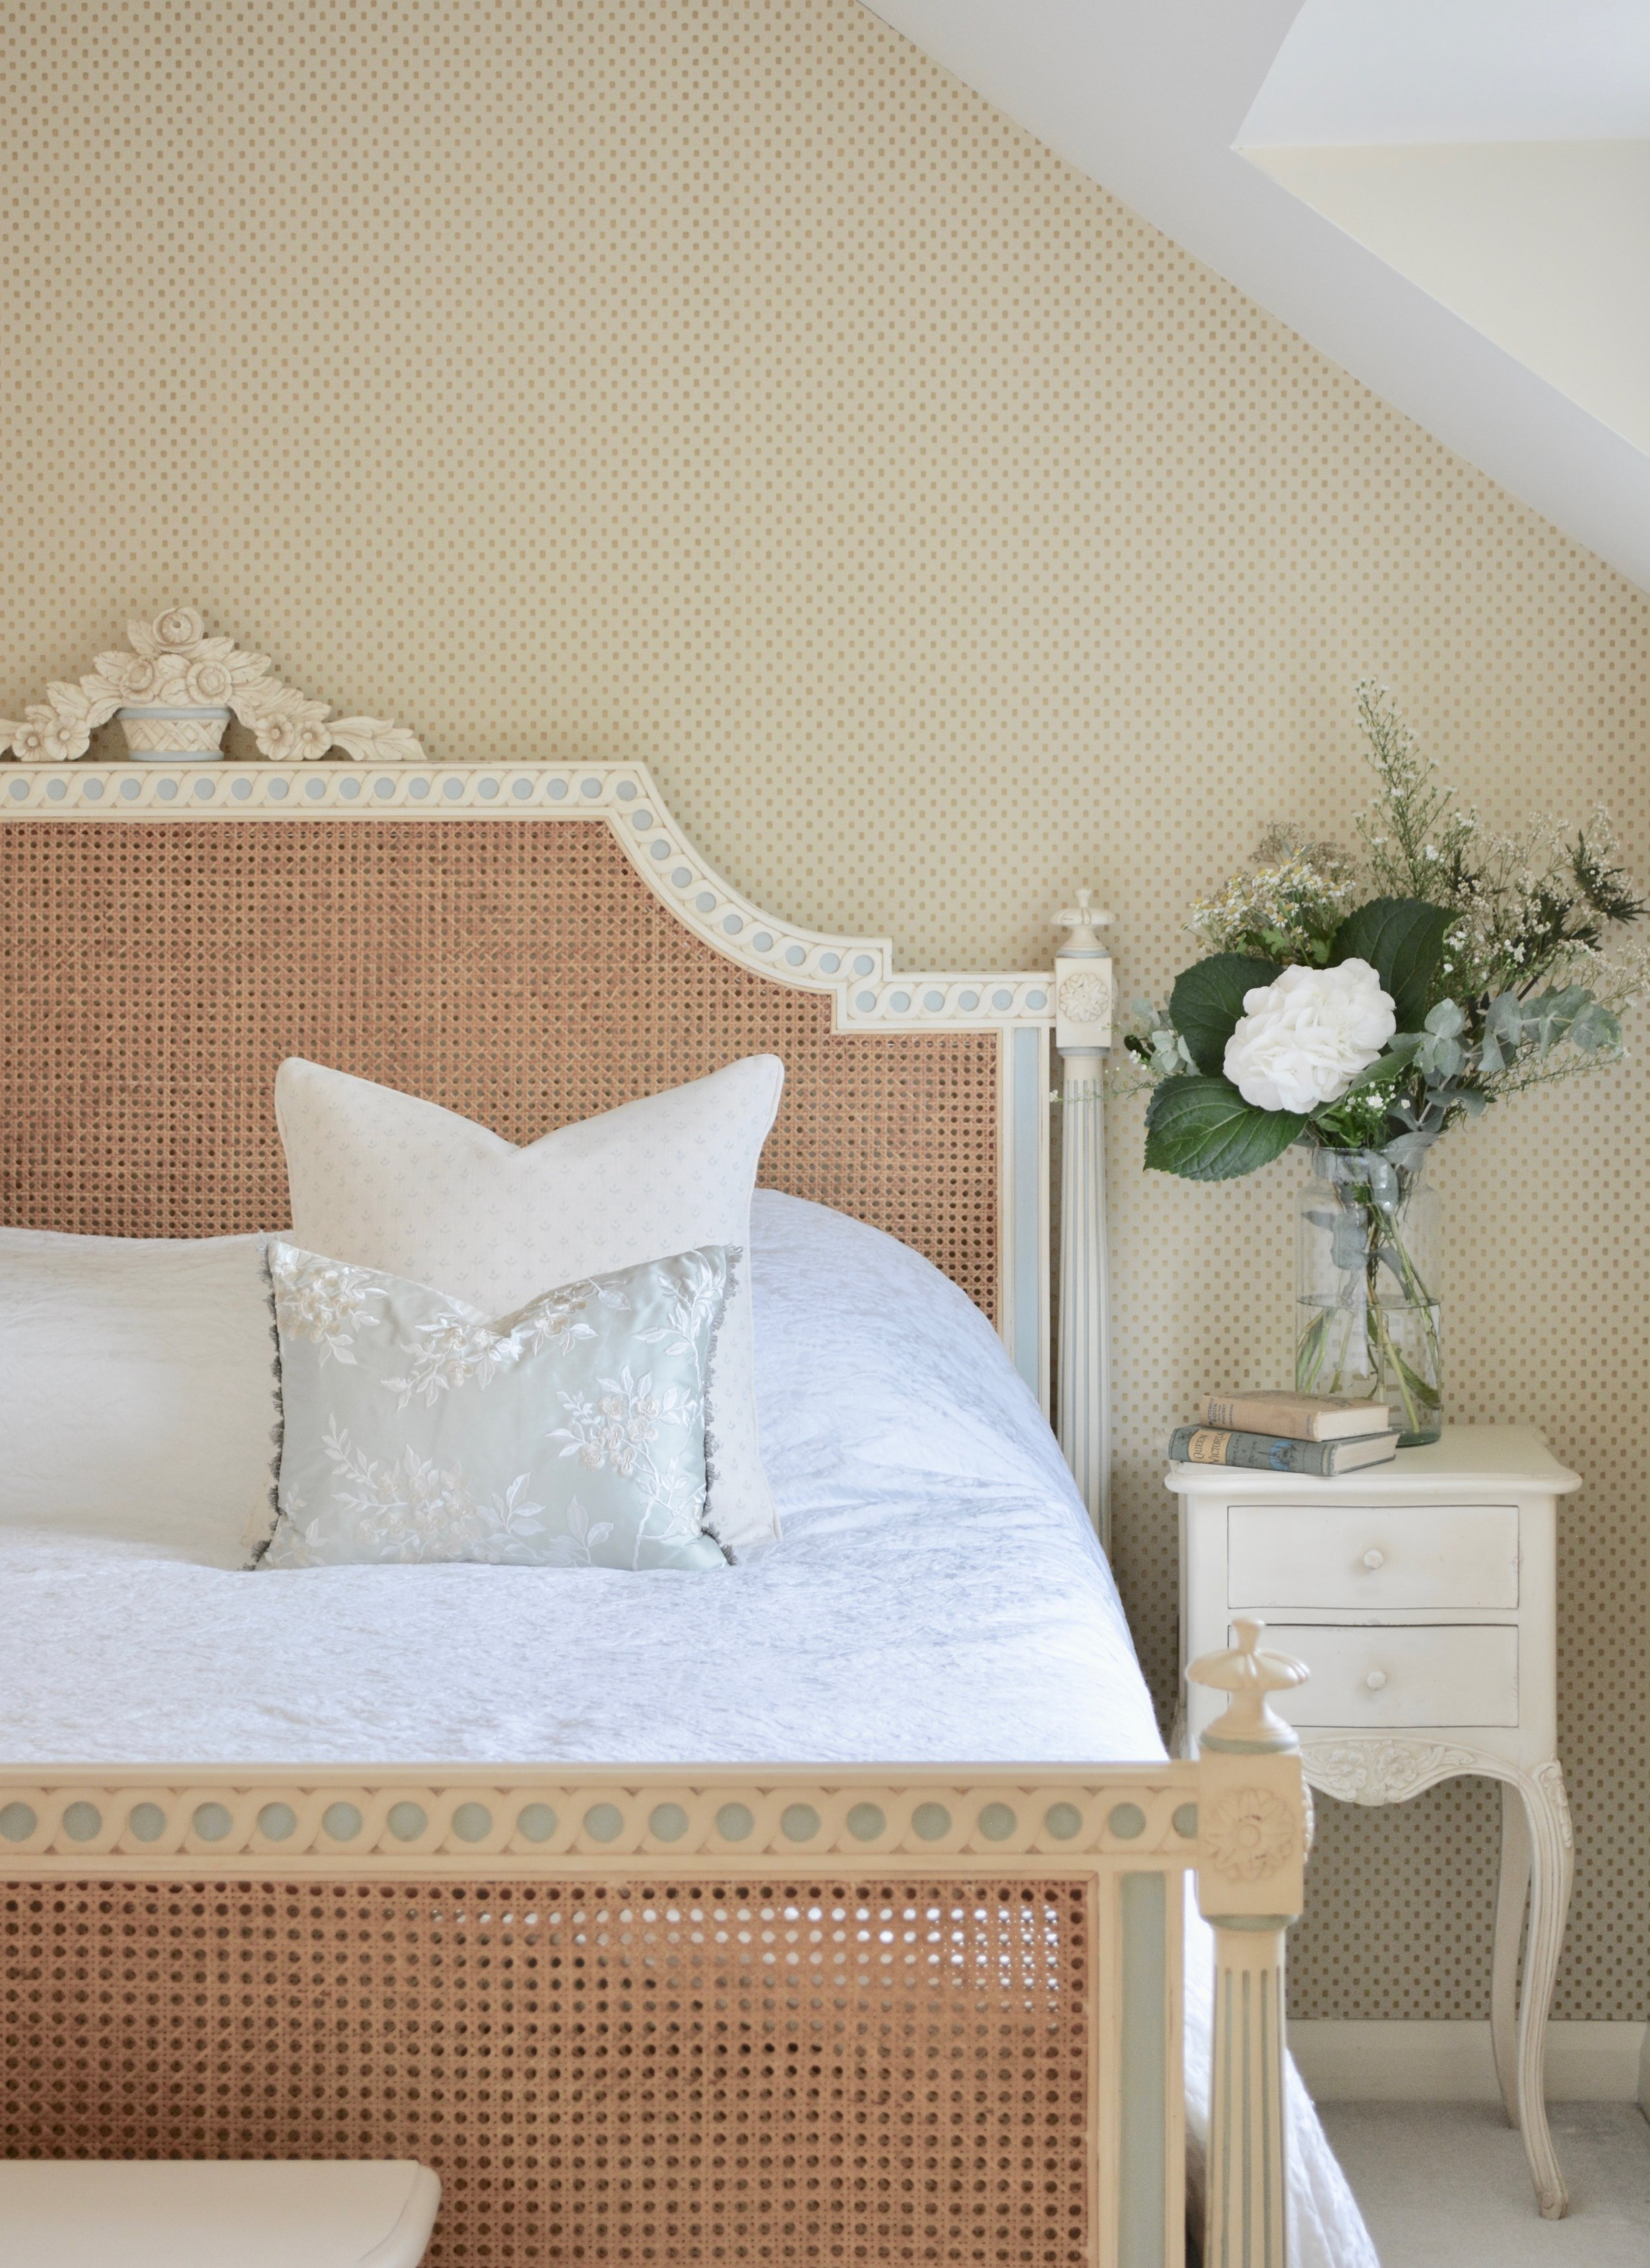 Country Cottage Bedroom Designed by Hannah Llewelyn Interior Design www.hlinteriors.co.uk 3.jpg